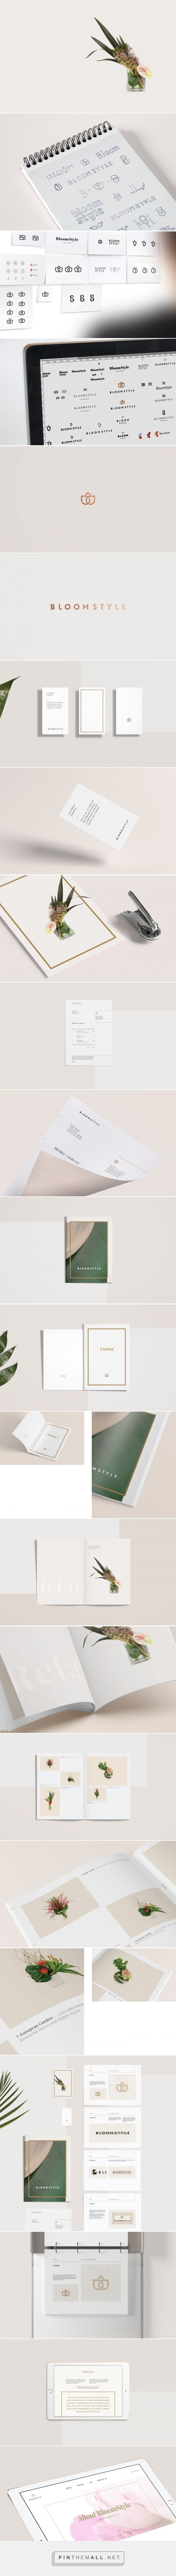 BloomStyle Visual Identity by Aleksey Busygin